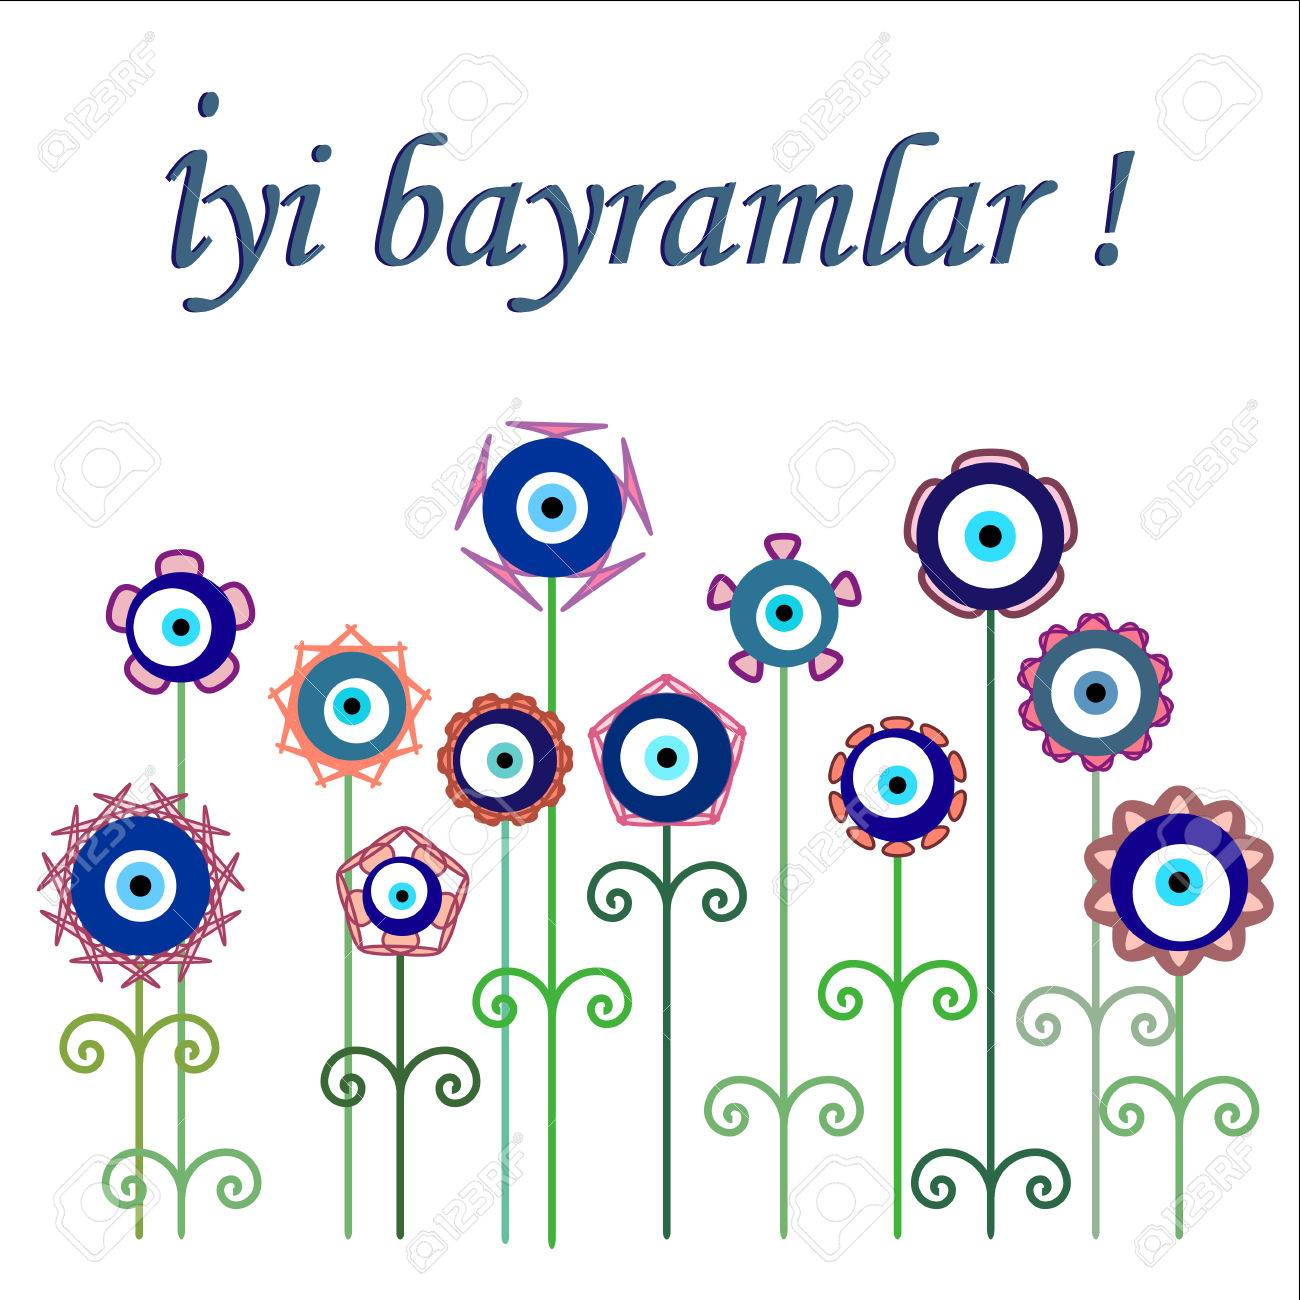 Greeting card for bayram holiday best holiday wishes written greeting card for bayram holiday best holiday wishes written on a card with flower styled m4hsunfo